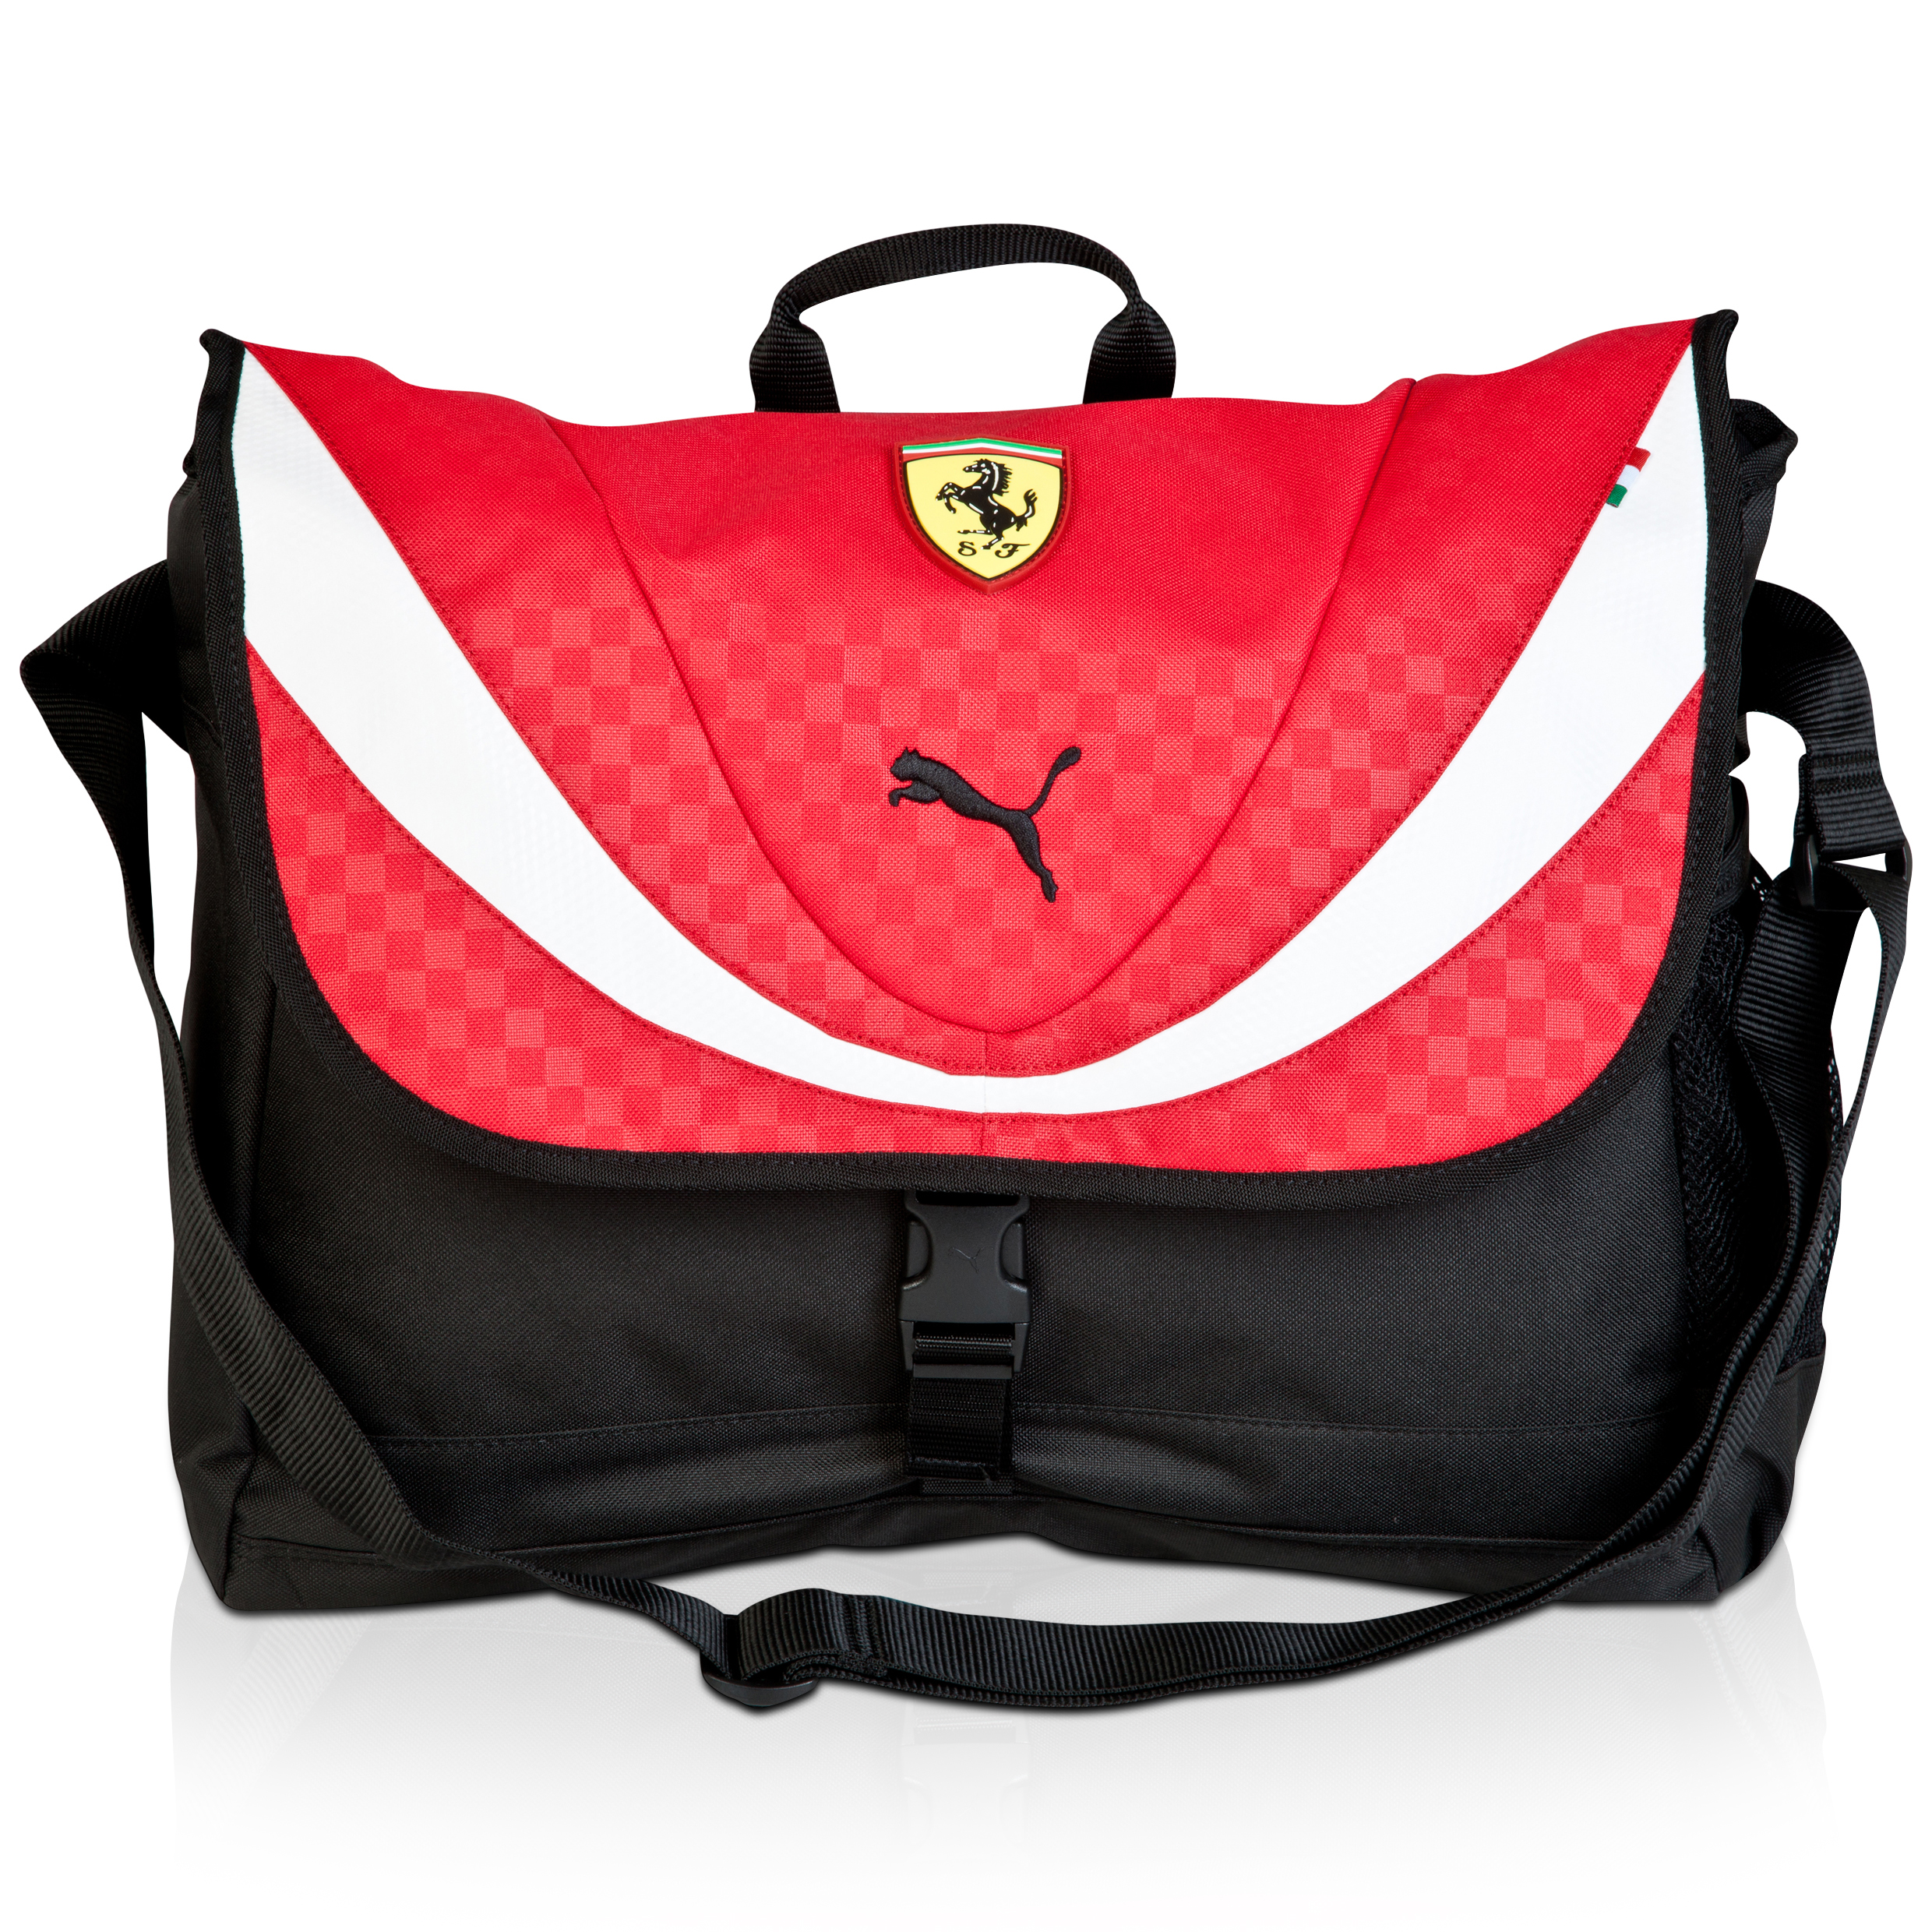 Scuderia Ferrari Shoulder Bag Red